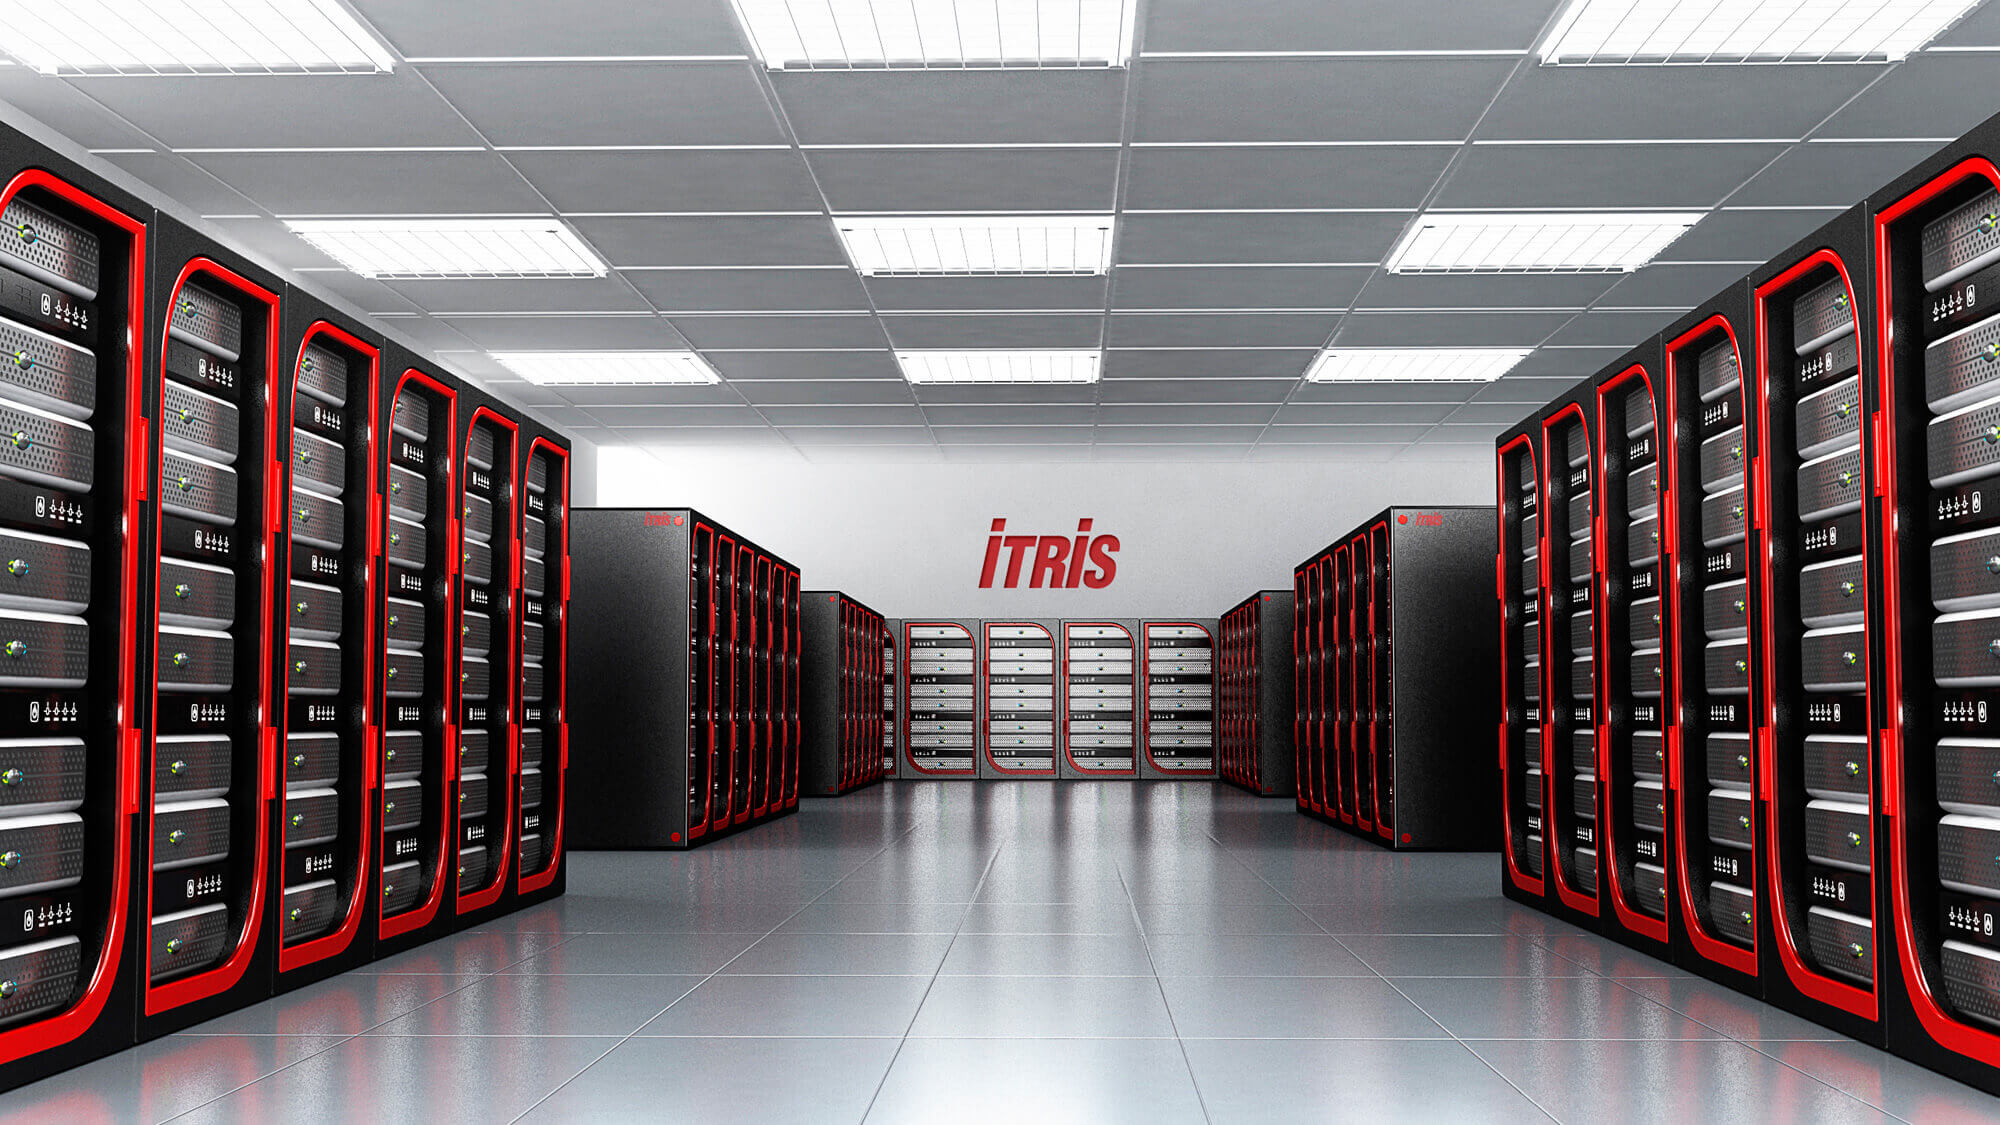 itris server header